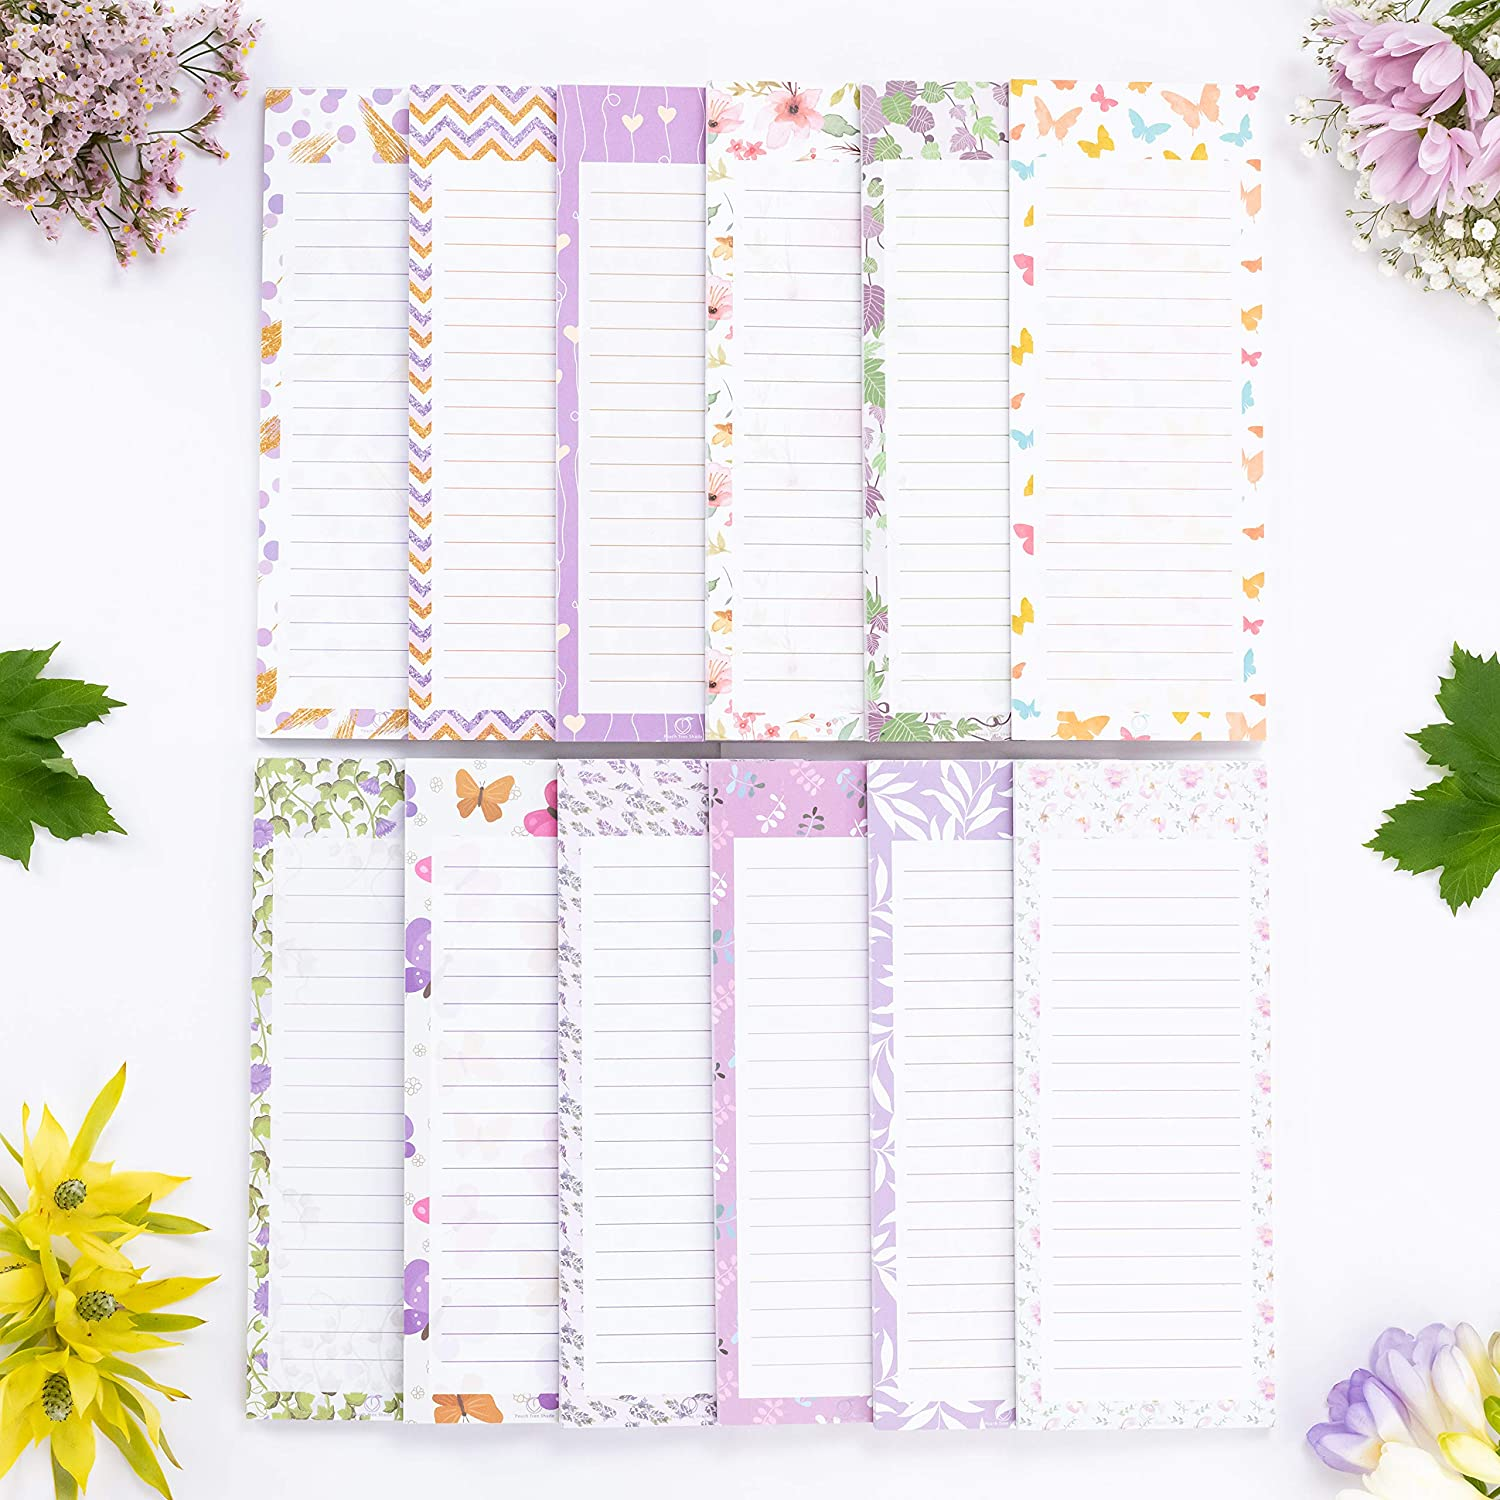 """Peach Tree Shade Magnetic Notepads, 12-Pack 60 Sheets Per Pad 3.5"""" x 9"""", for Fridge, Kitchen, Shopping, Grocery, To-Do List, Memo, Reminder, Note, Book, Stationery, (Ivynotes Garden & Forest)"""